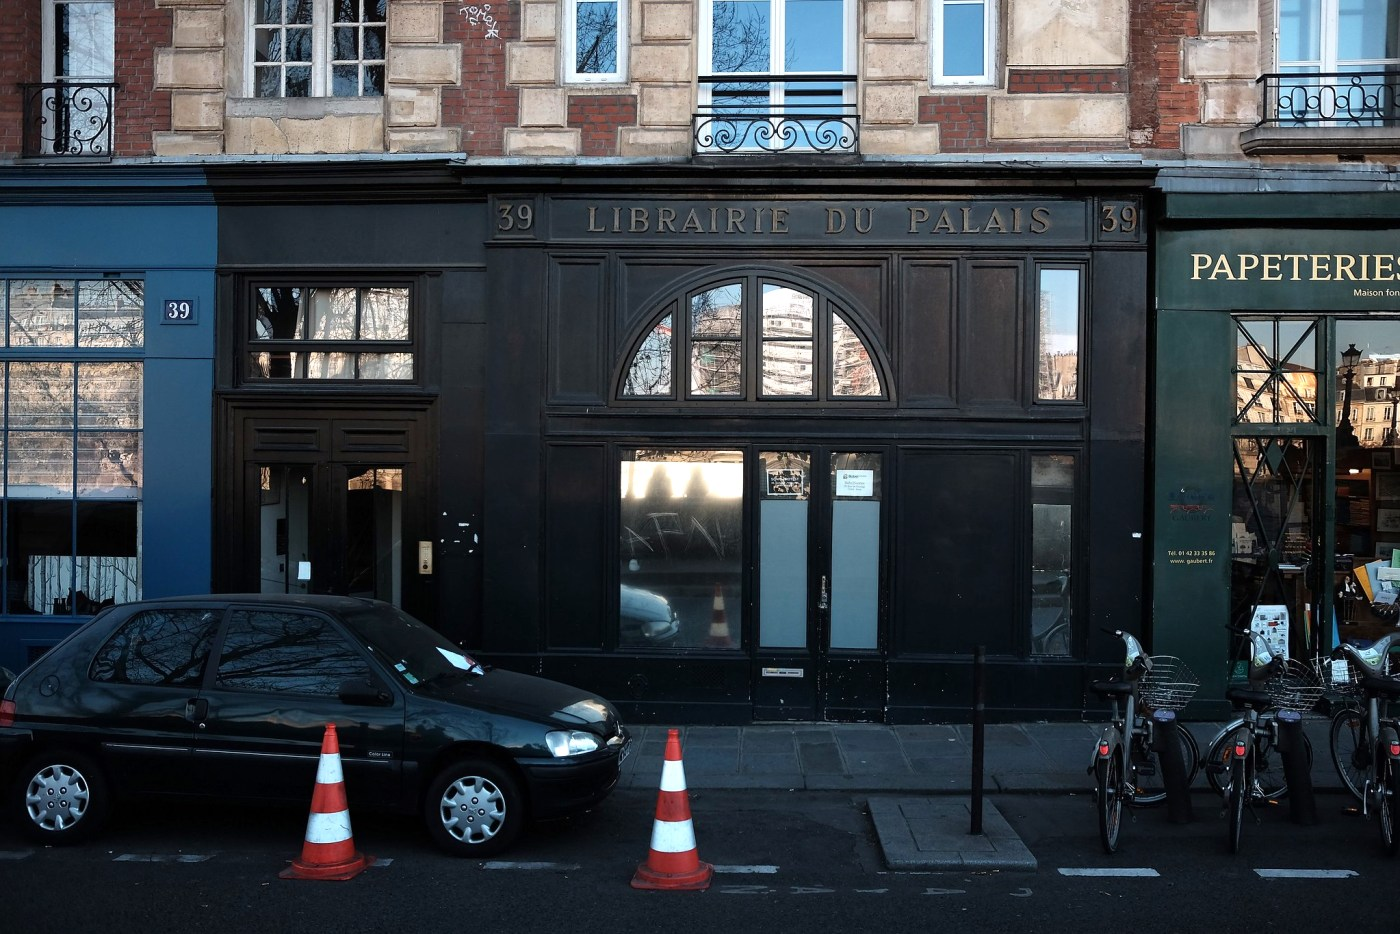 The original workshop of Abraham-Louis Breguet on the Qvai De L'Horloge in Paris